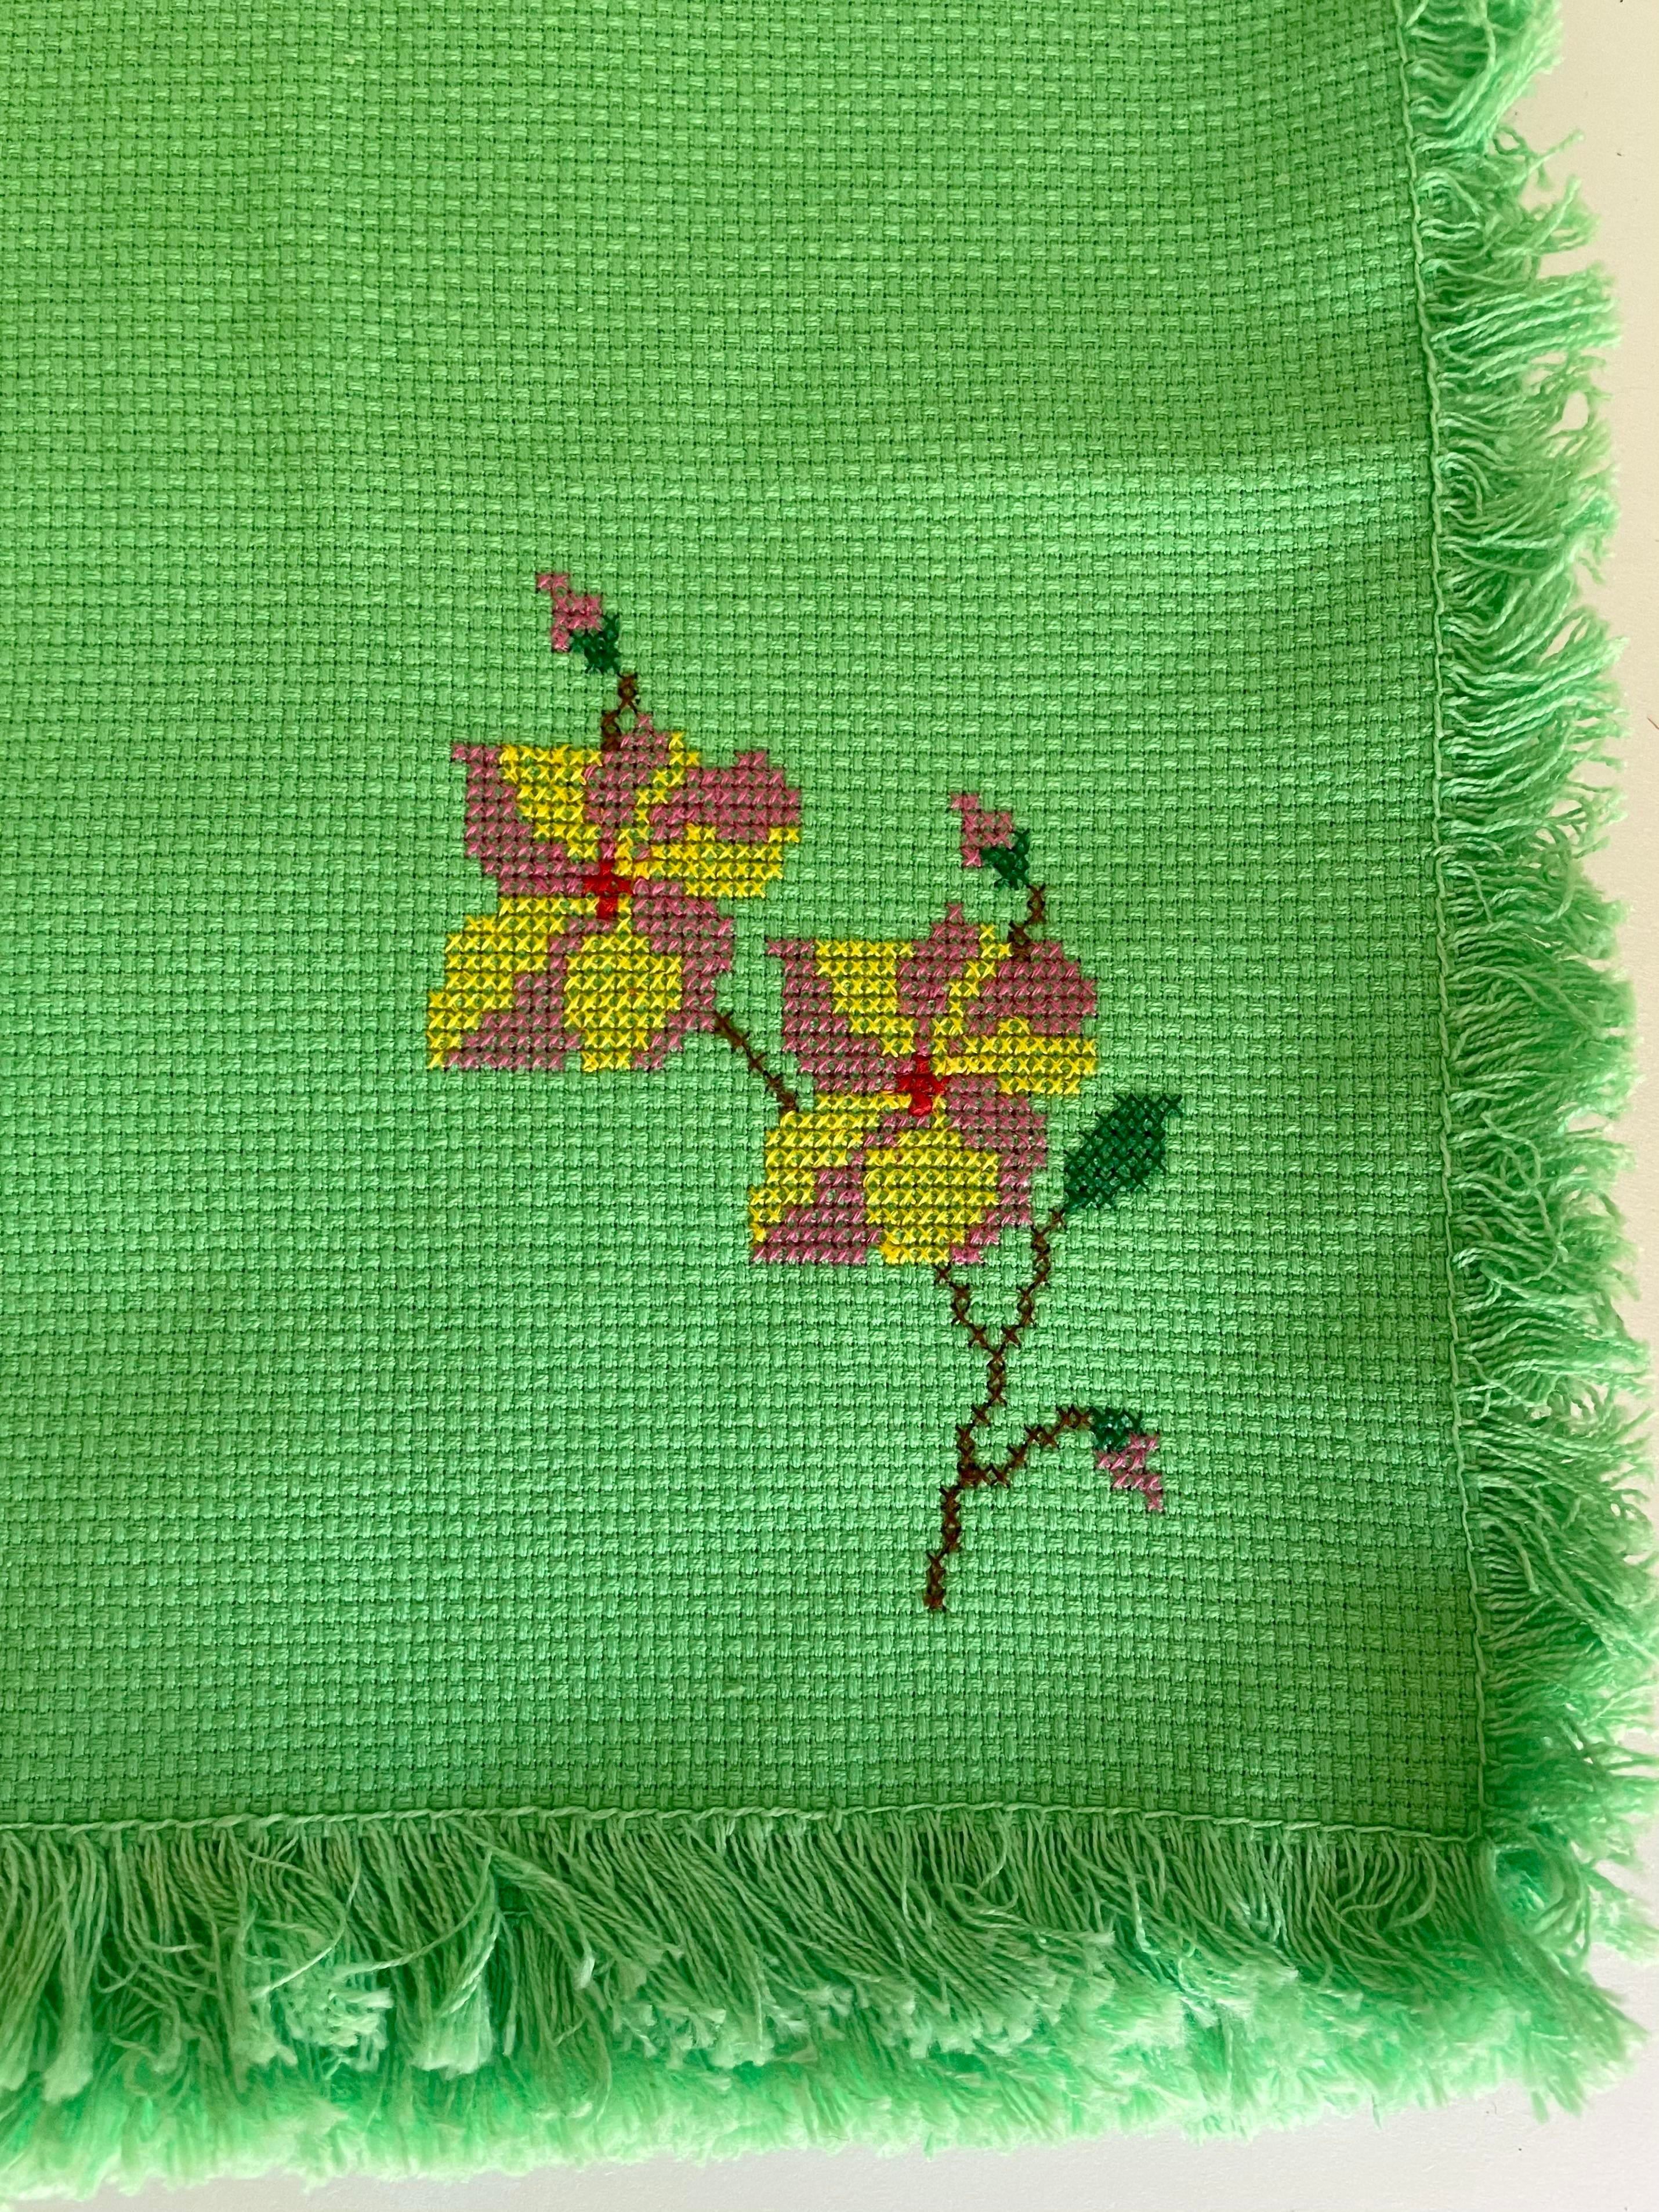 Vintage Linens With Floral Embroidery